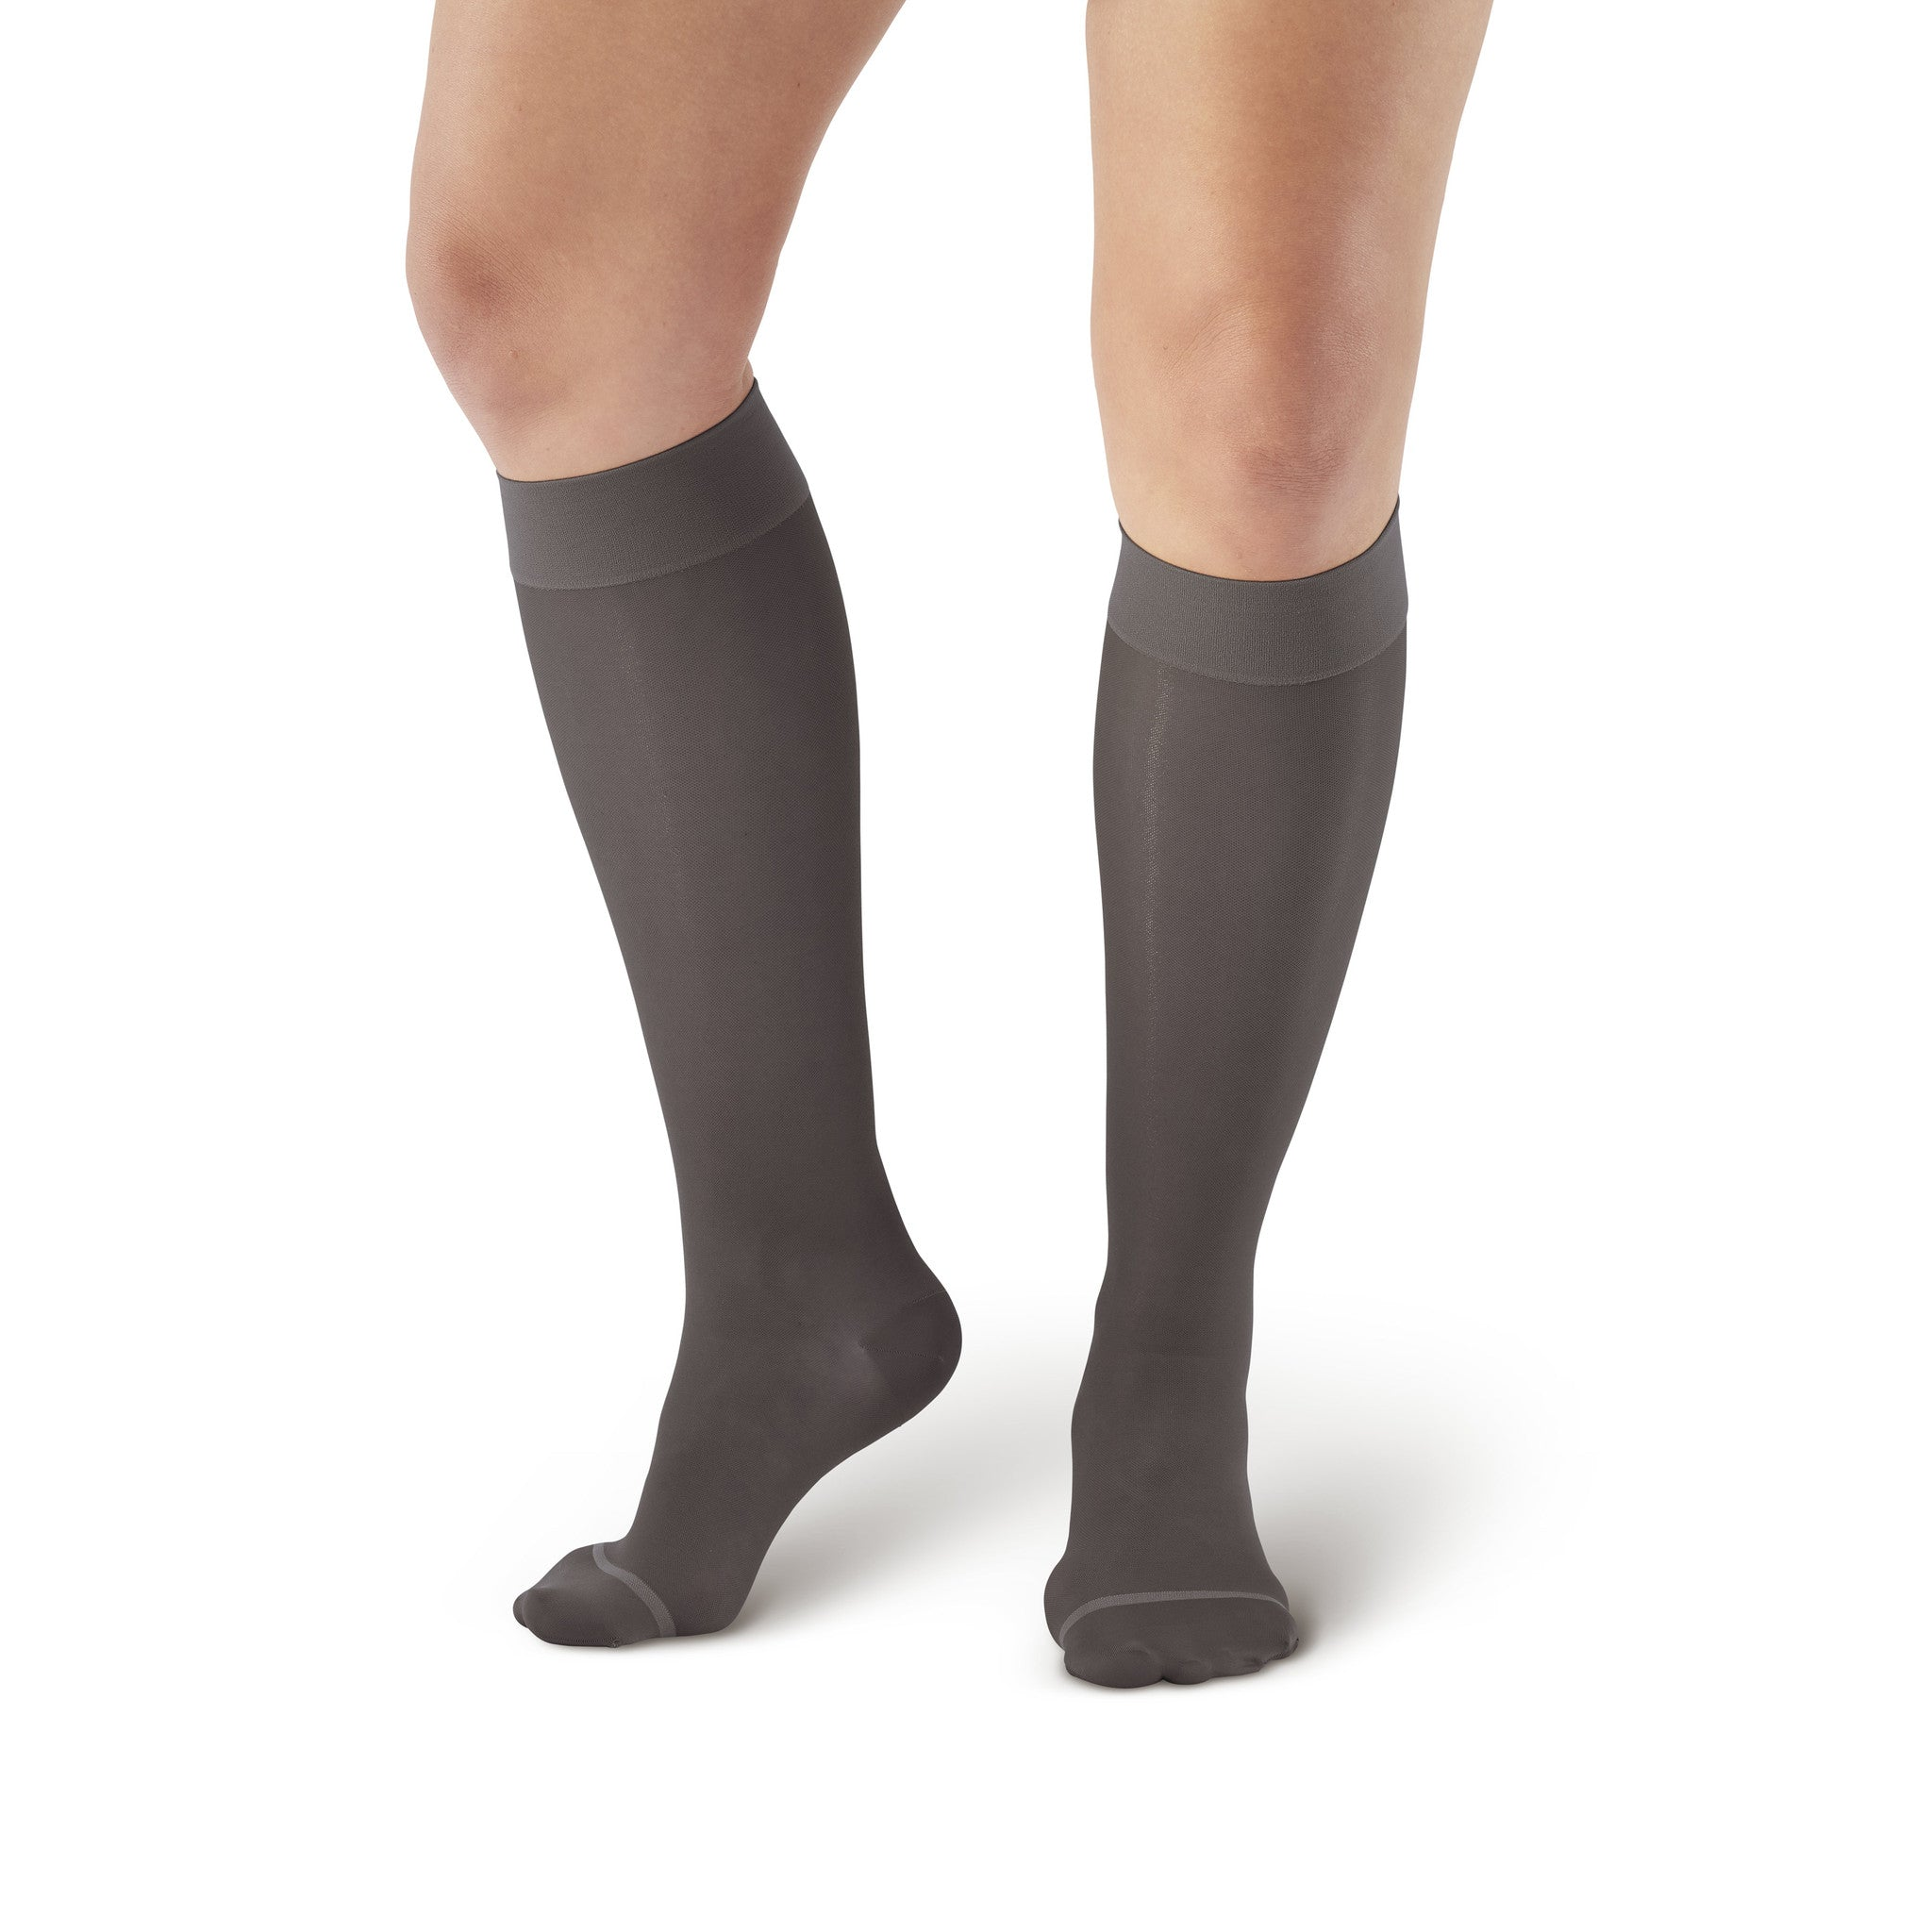 8790b054bd3 ... AW Style 16 Sheer Support Closed Toe Knee Highs - 15-20 mmHg - Pepper  ...